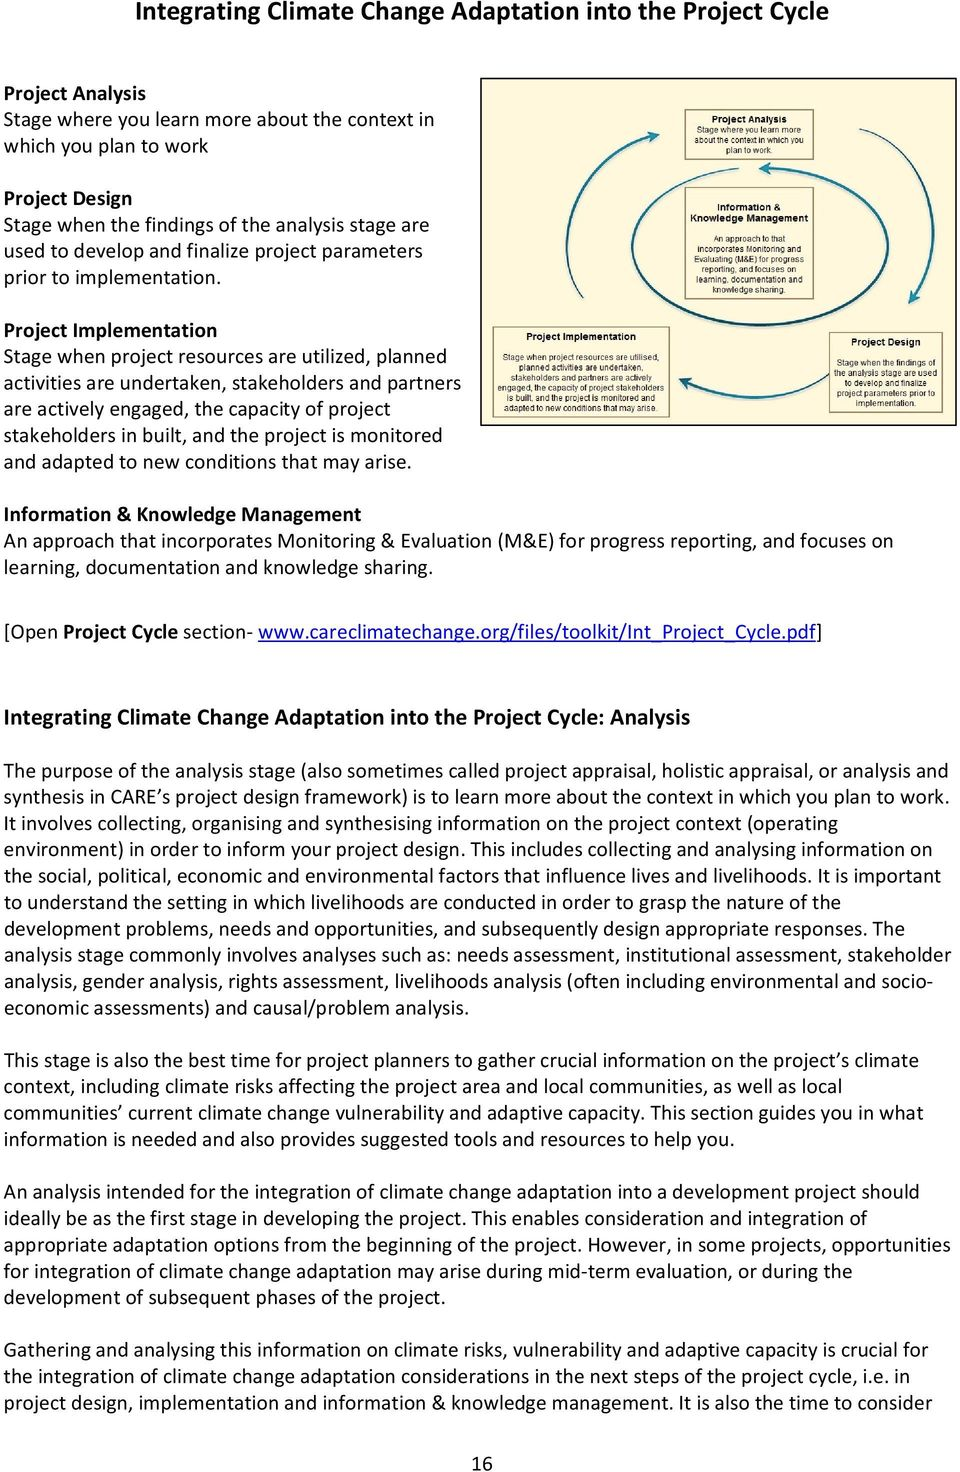 Project Implementation Stage when project resources are utilized, planned activities are undertaken, stakeholders and partners are actively engaged, the capacity of project stakeholders in built, and